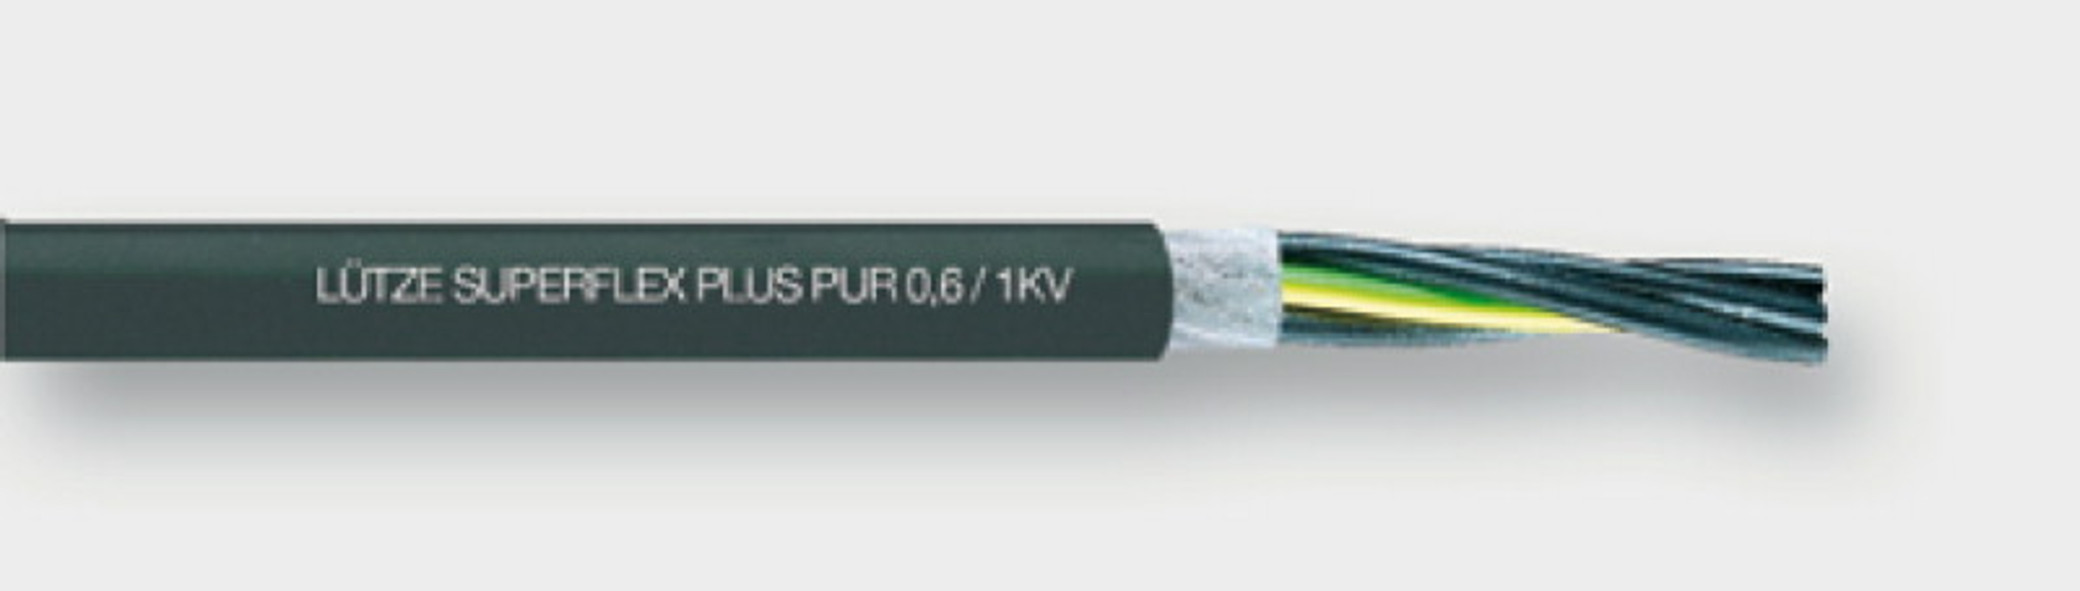 111429 - LÜTZE SUPERFLEX® PLUS M PUR 0.6/1 kV Motor/energy supply cable For highest requirements